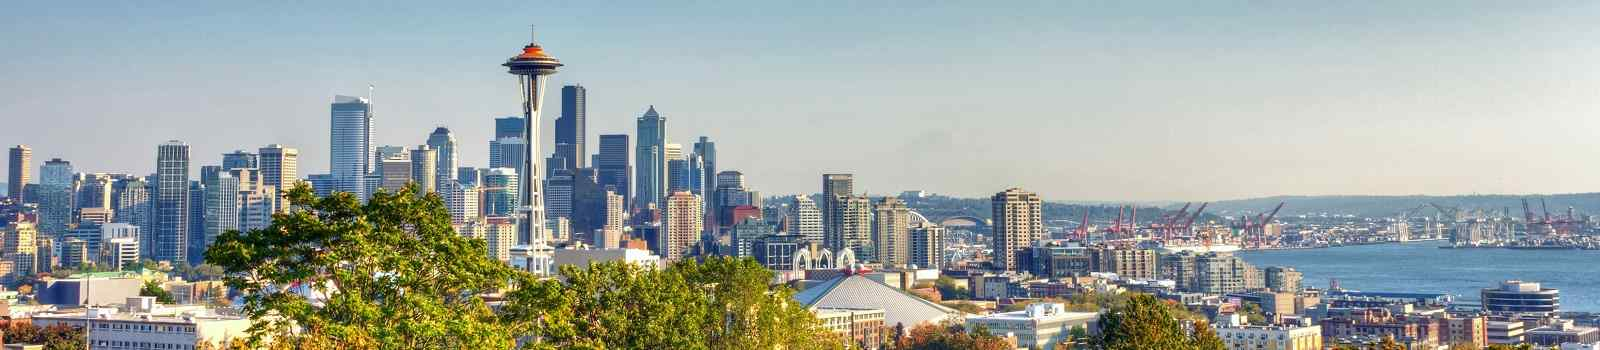 RIVER-WILD  Seattle Skyline shutterstock 166343246